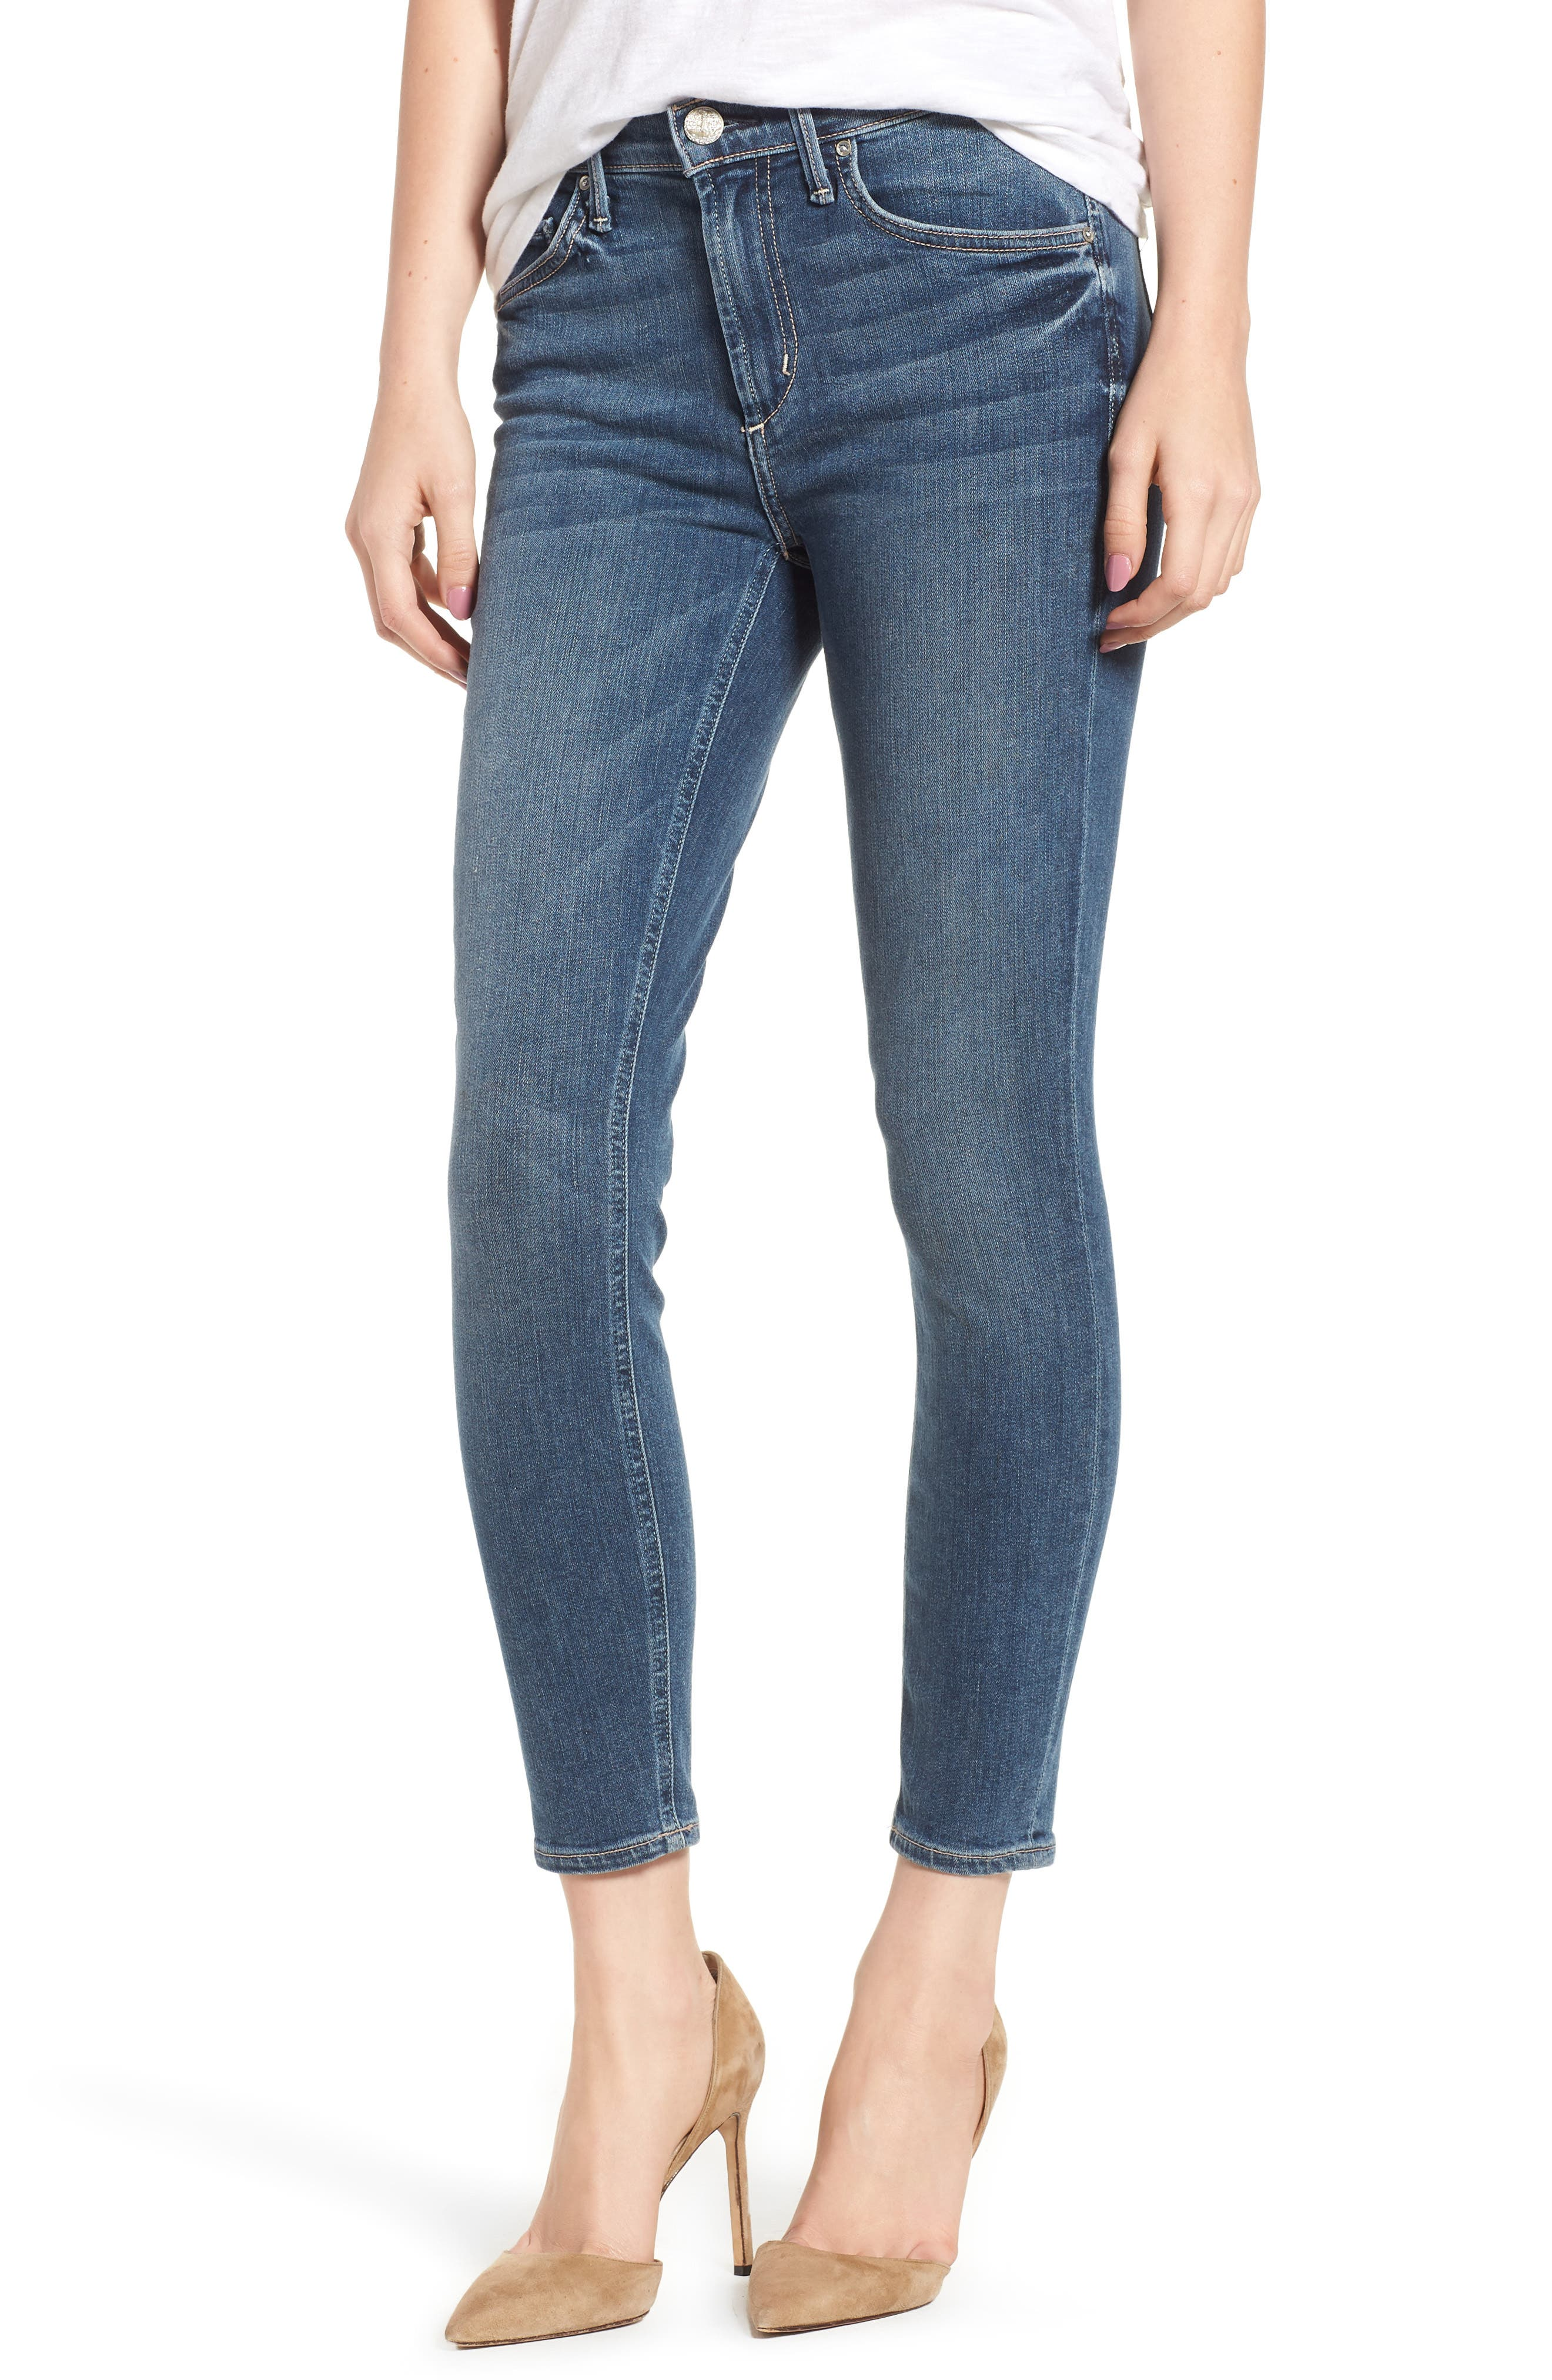 Newton Crop Skinny Jeans,                             Main thumbnail 1, color,                             Barthelemy Gardens